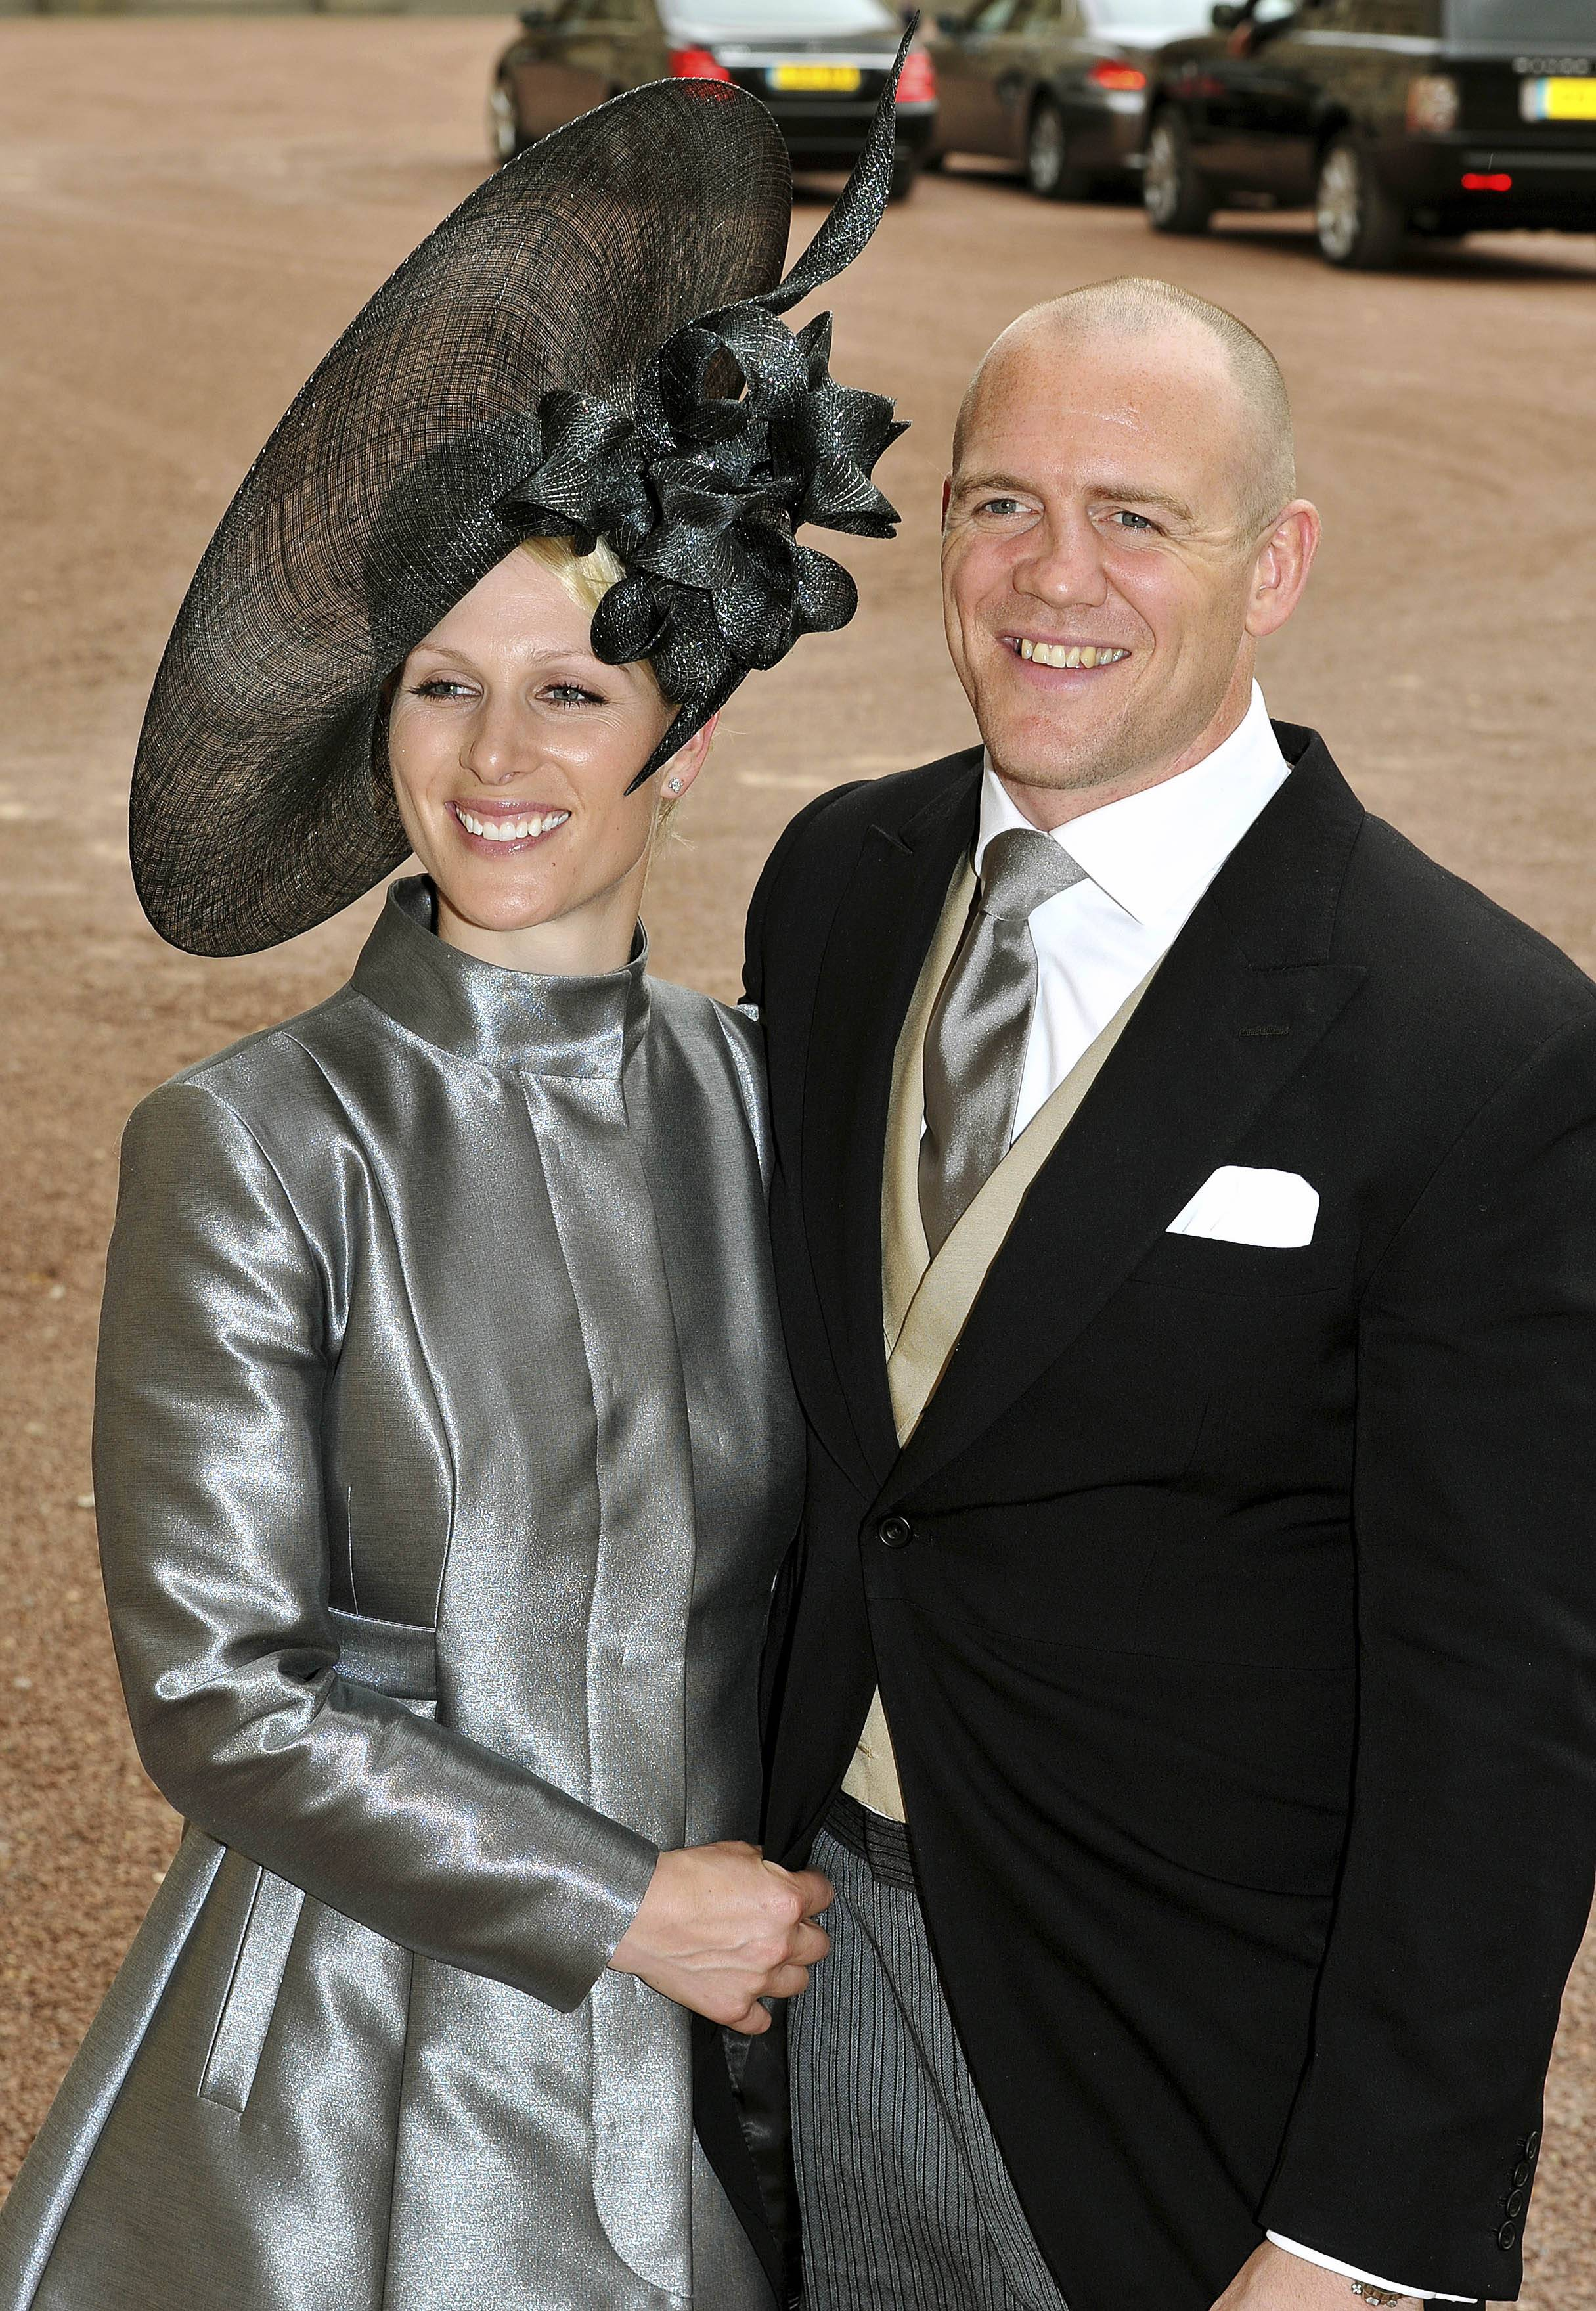 The eldest granddaughter of Queen Elizabeth II, Zara Phillips, will marry England rugby stalwart Mike Tindall Saturday.